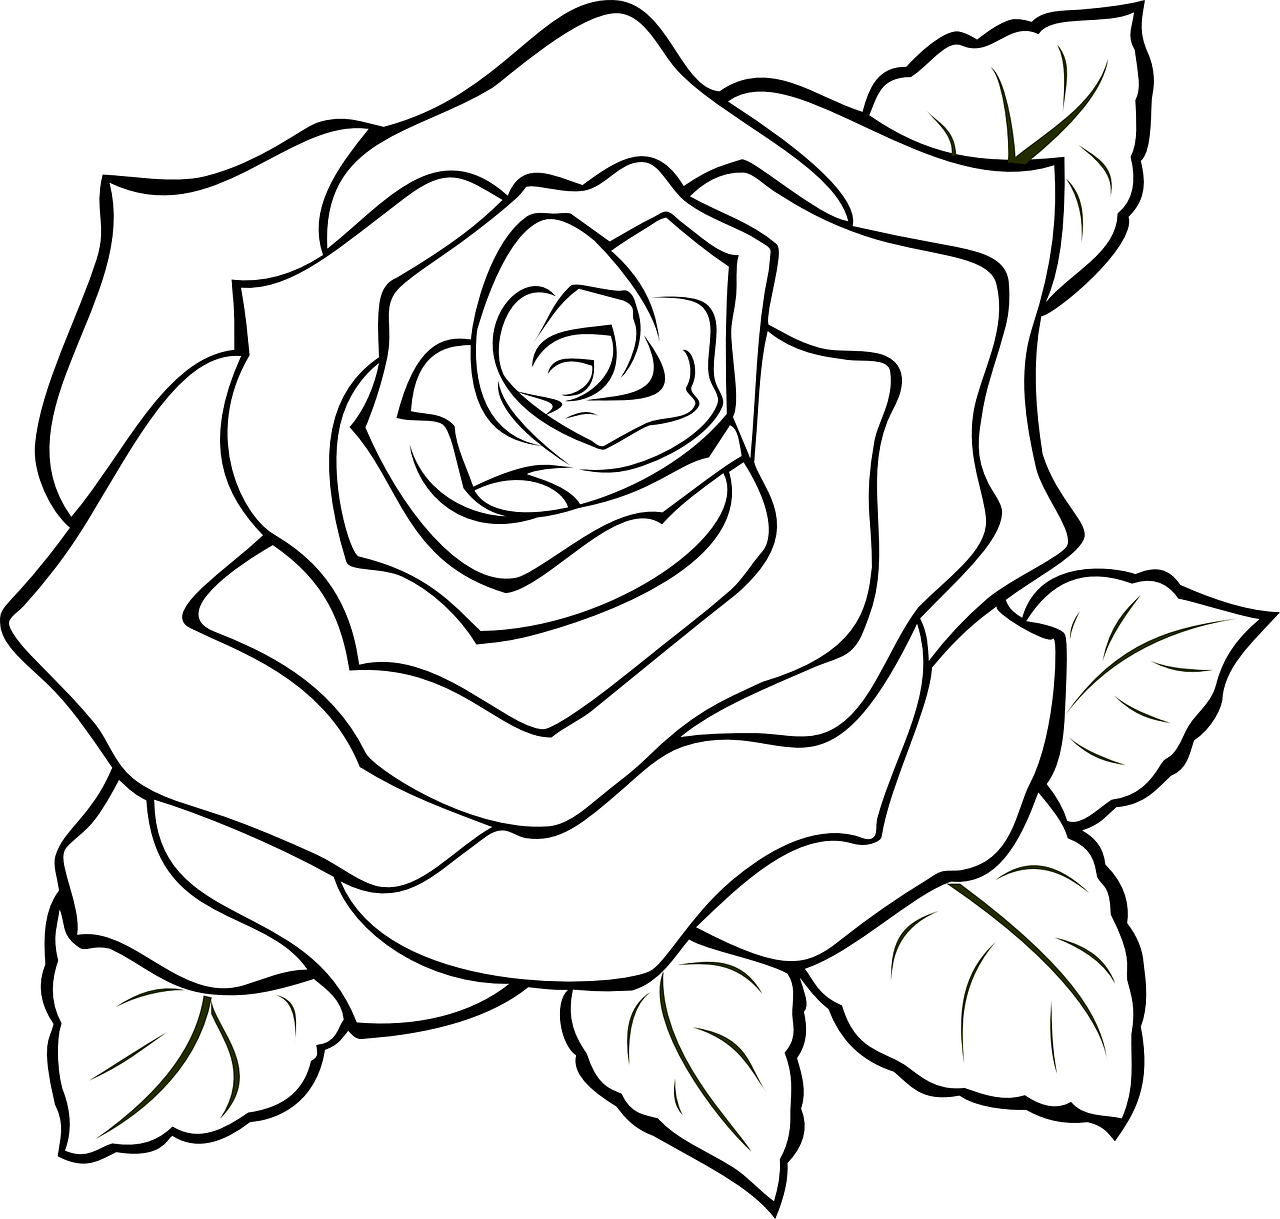 Petal drawing rose. How to make of